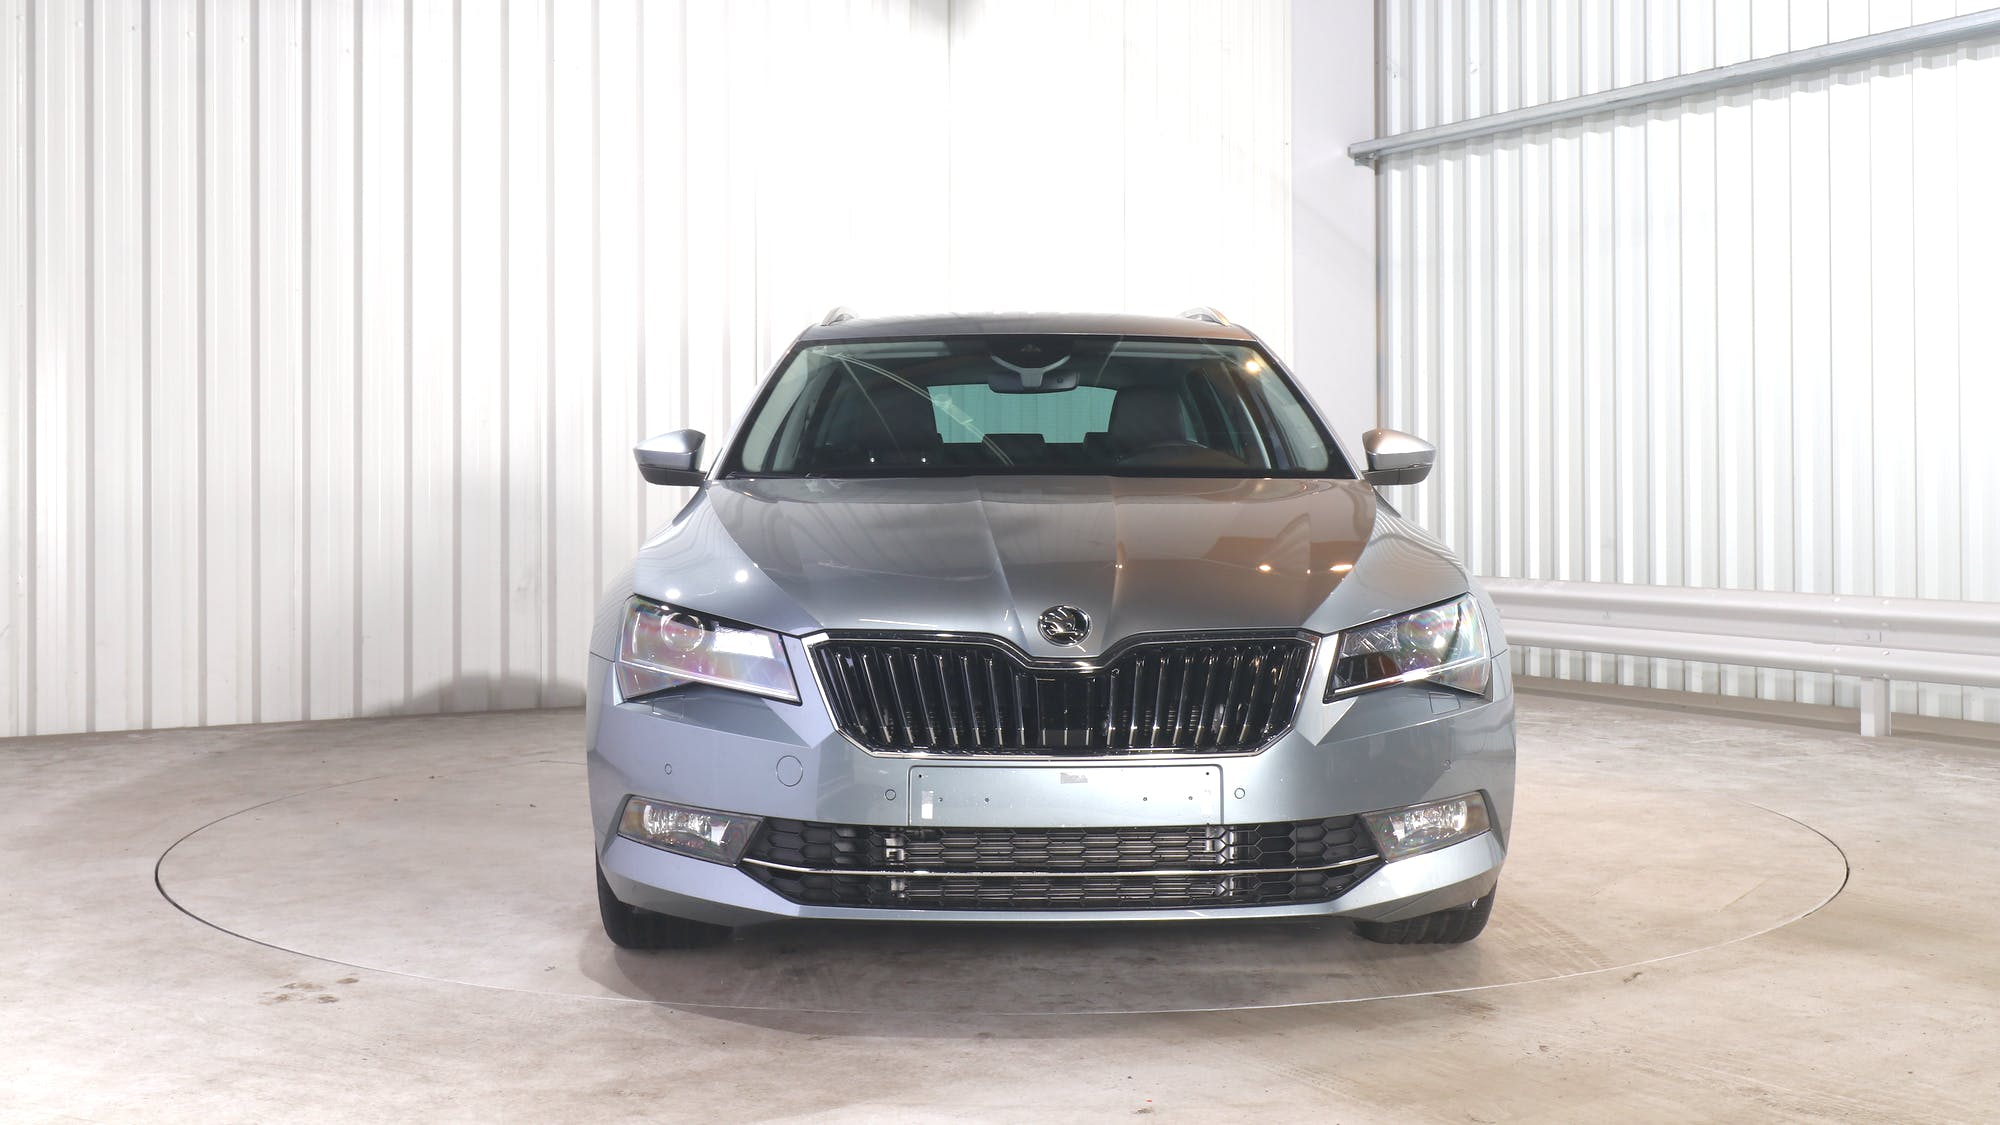 SKODA SUPERB COMBI leasing exterior 11